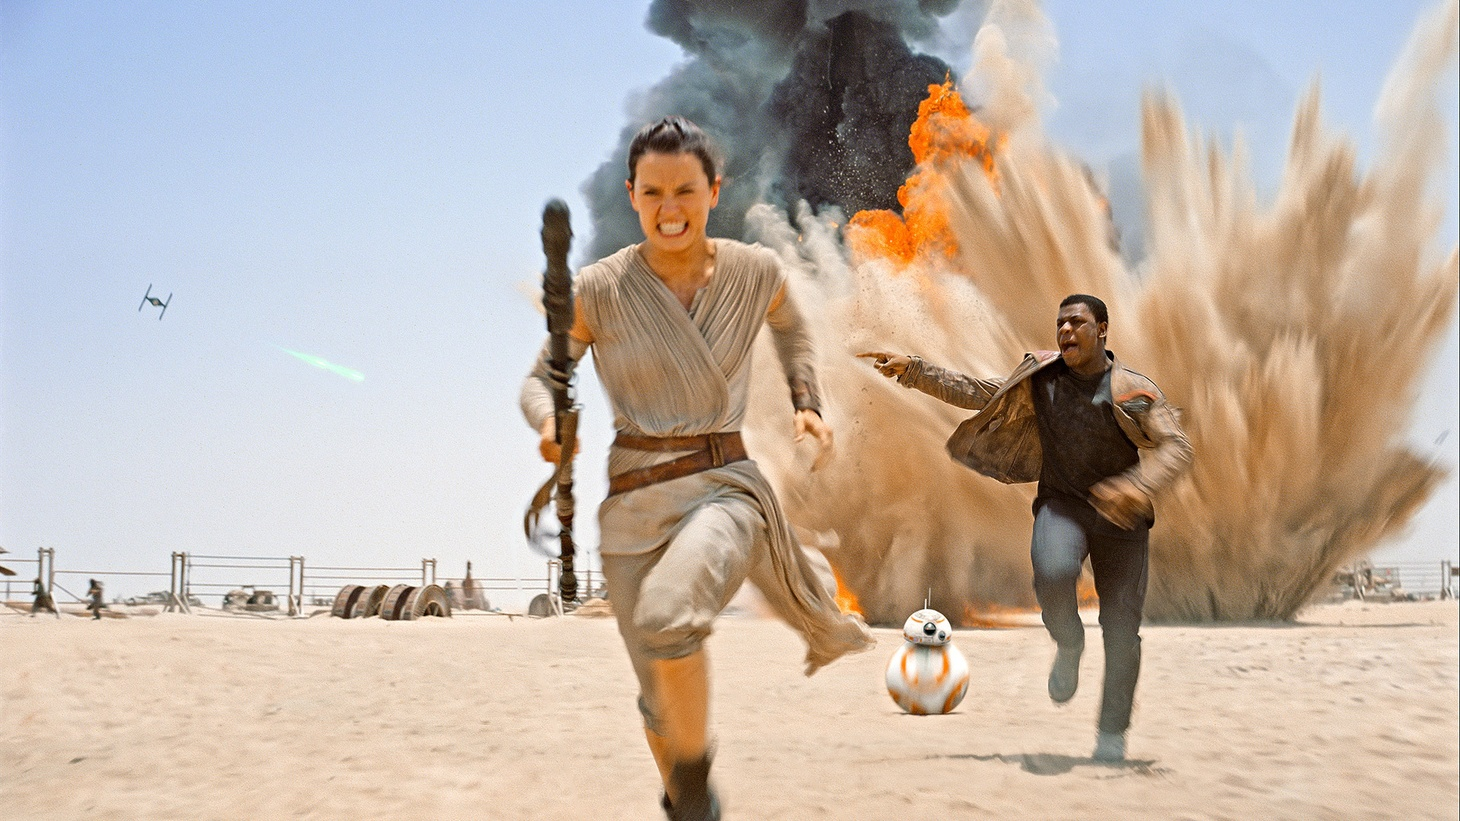 The Star Wars franchise has roared back with full force.